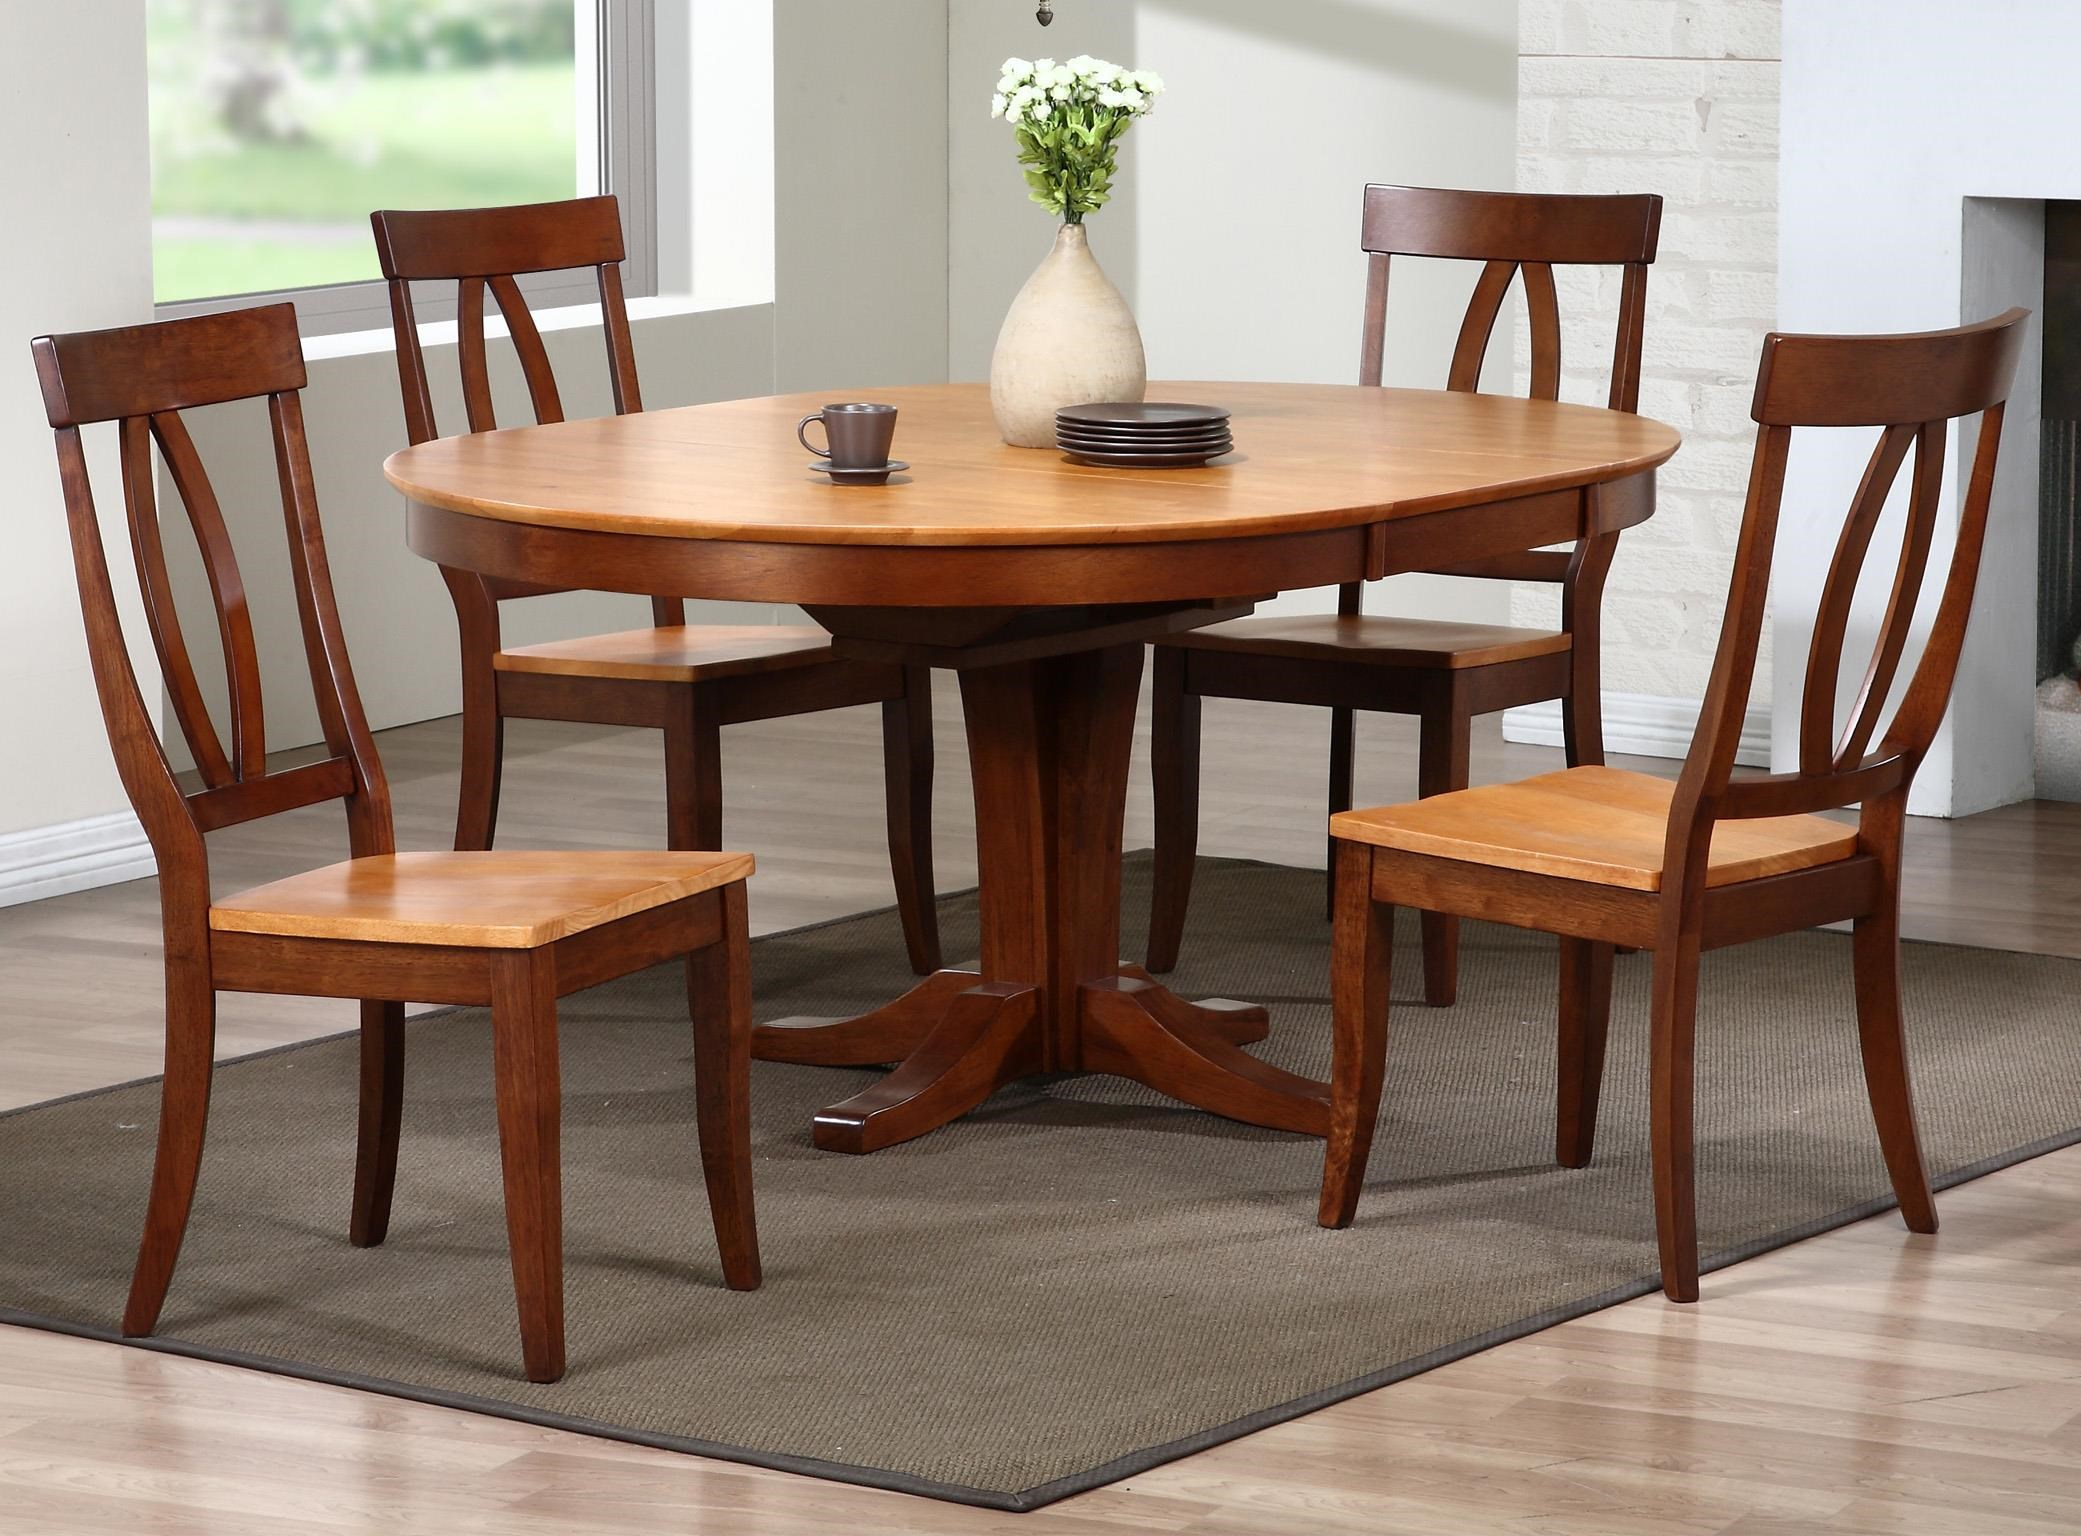 Gentil Santa Barbara 5 Piece Dining Set With Keyhole Back Chairs By Winners Only